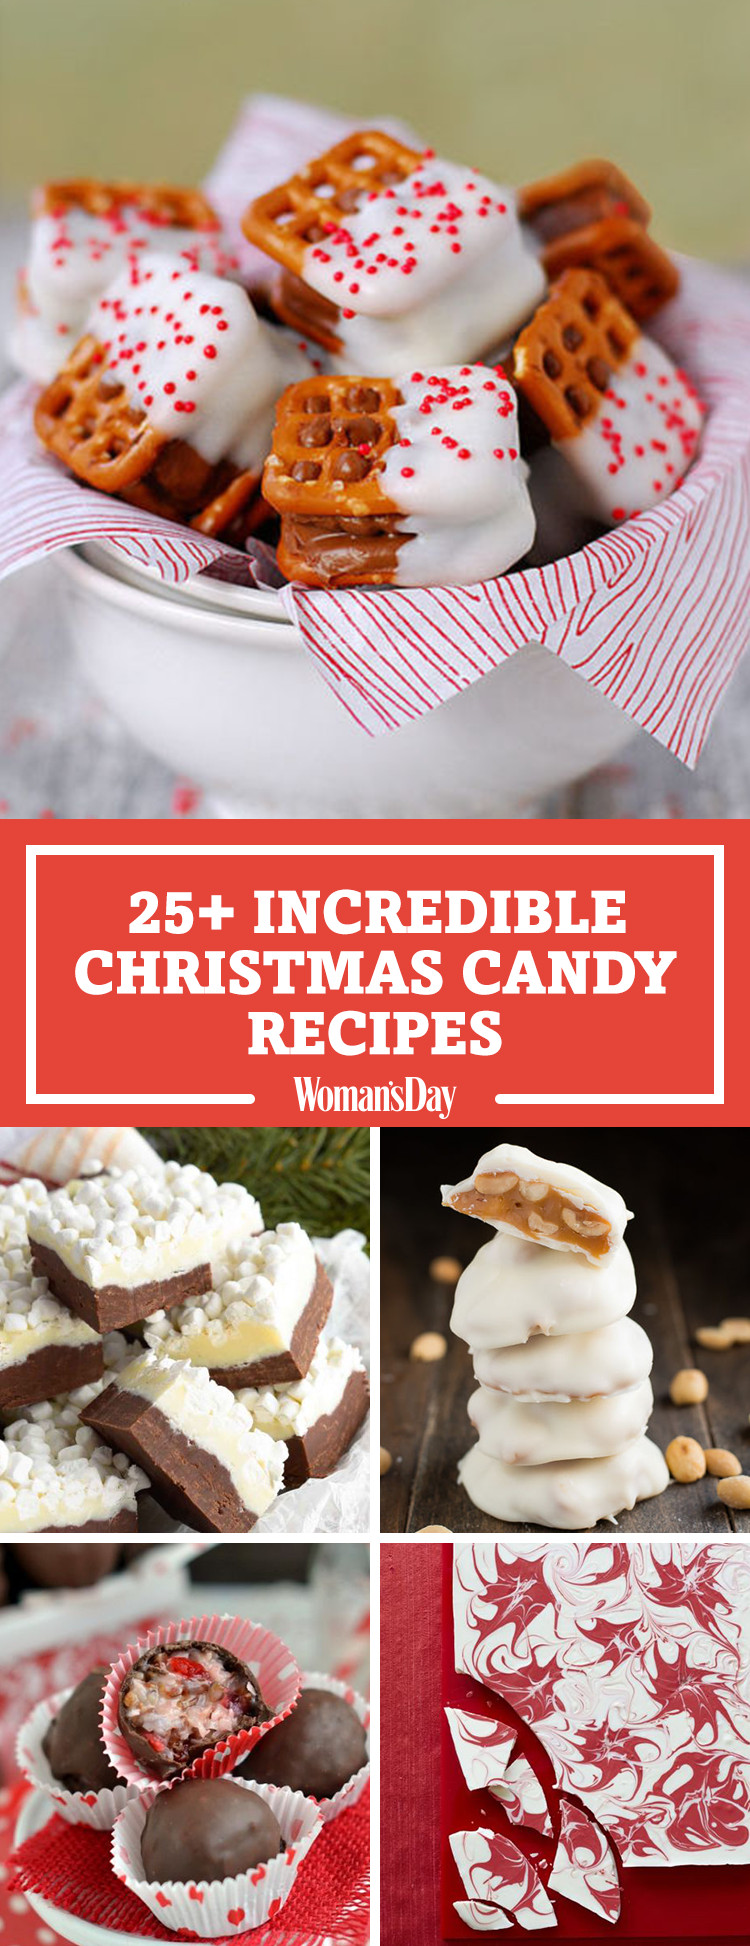 Recipes For Christmas Candy  28 Homemade Christmas Candy Recipes How To Make Your Own